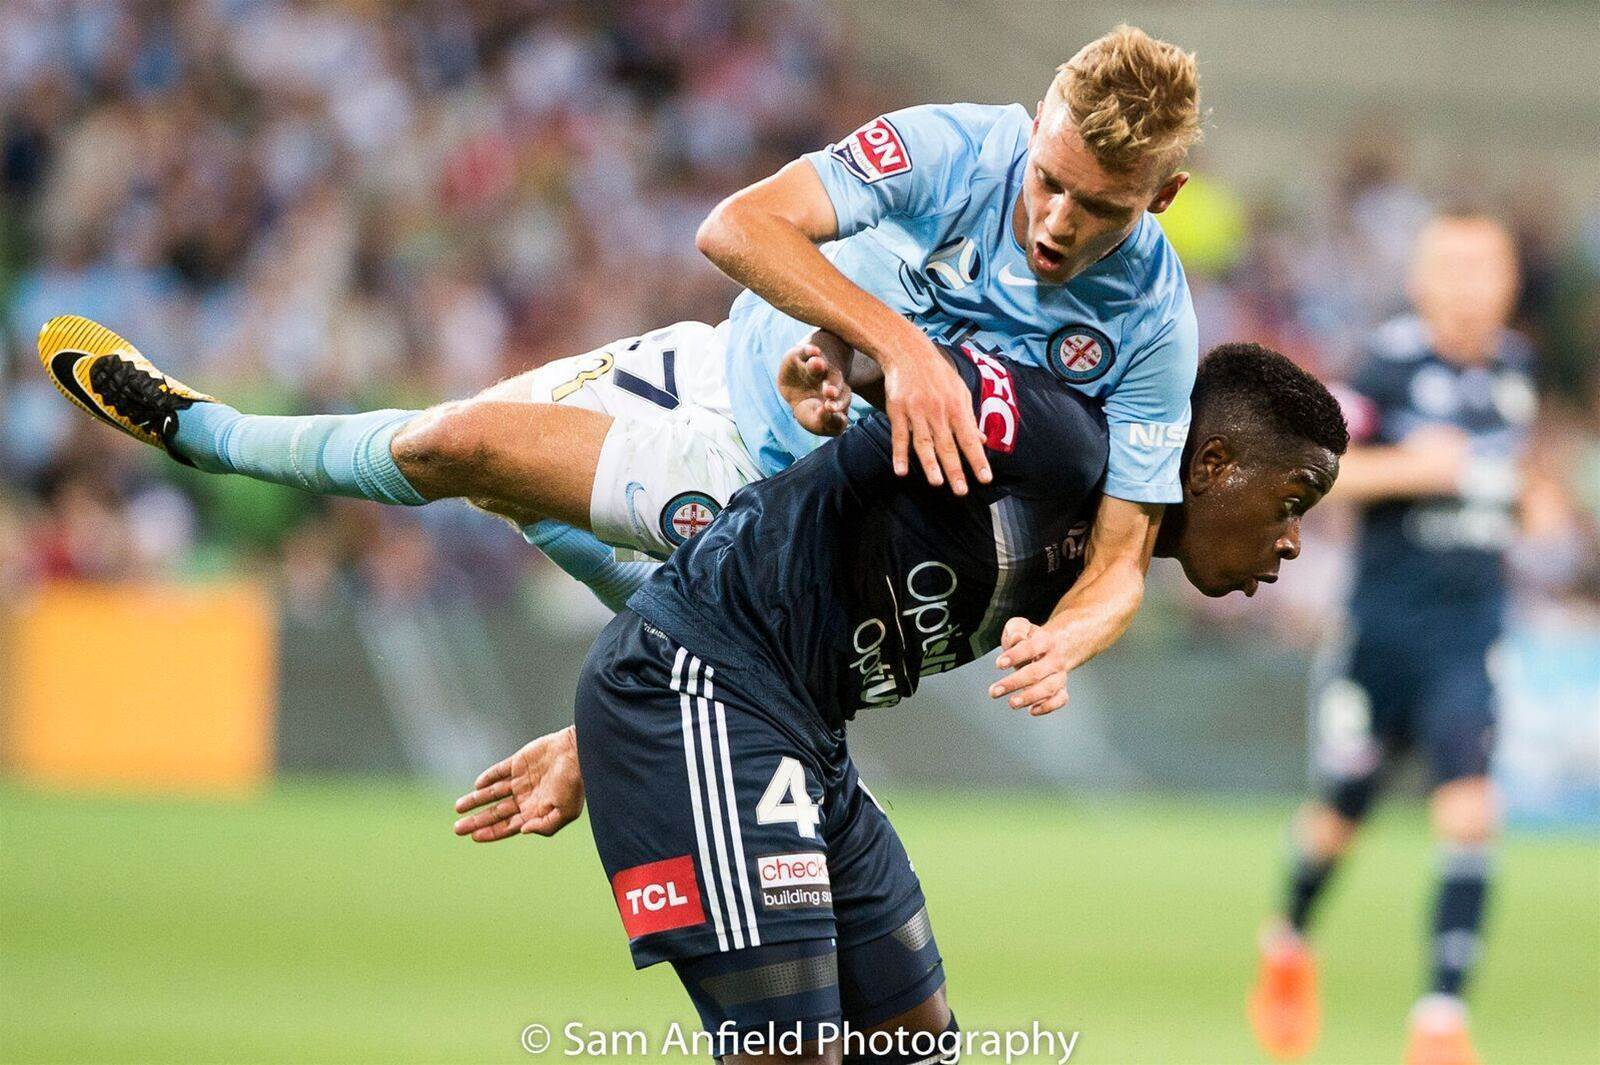 PIC GALLERY: Melbourne Derby